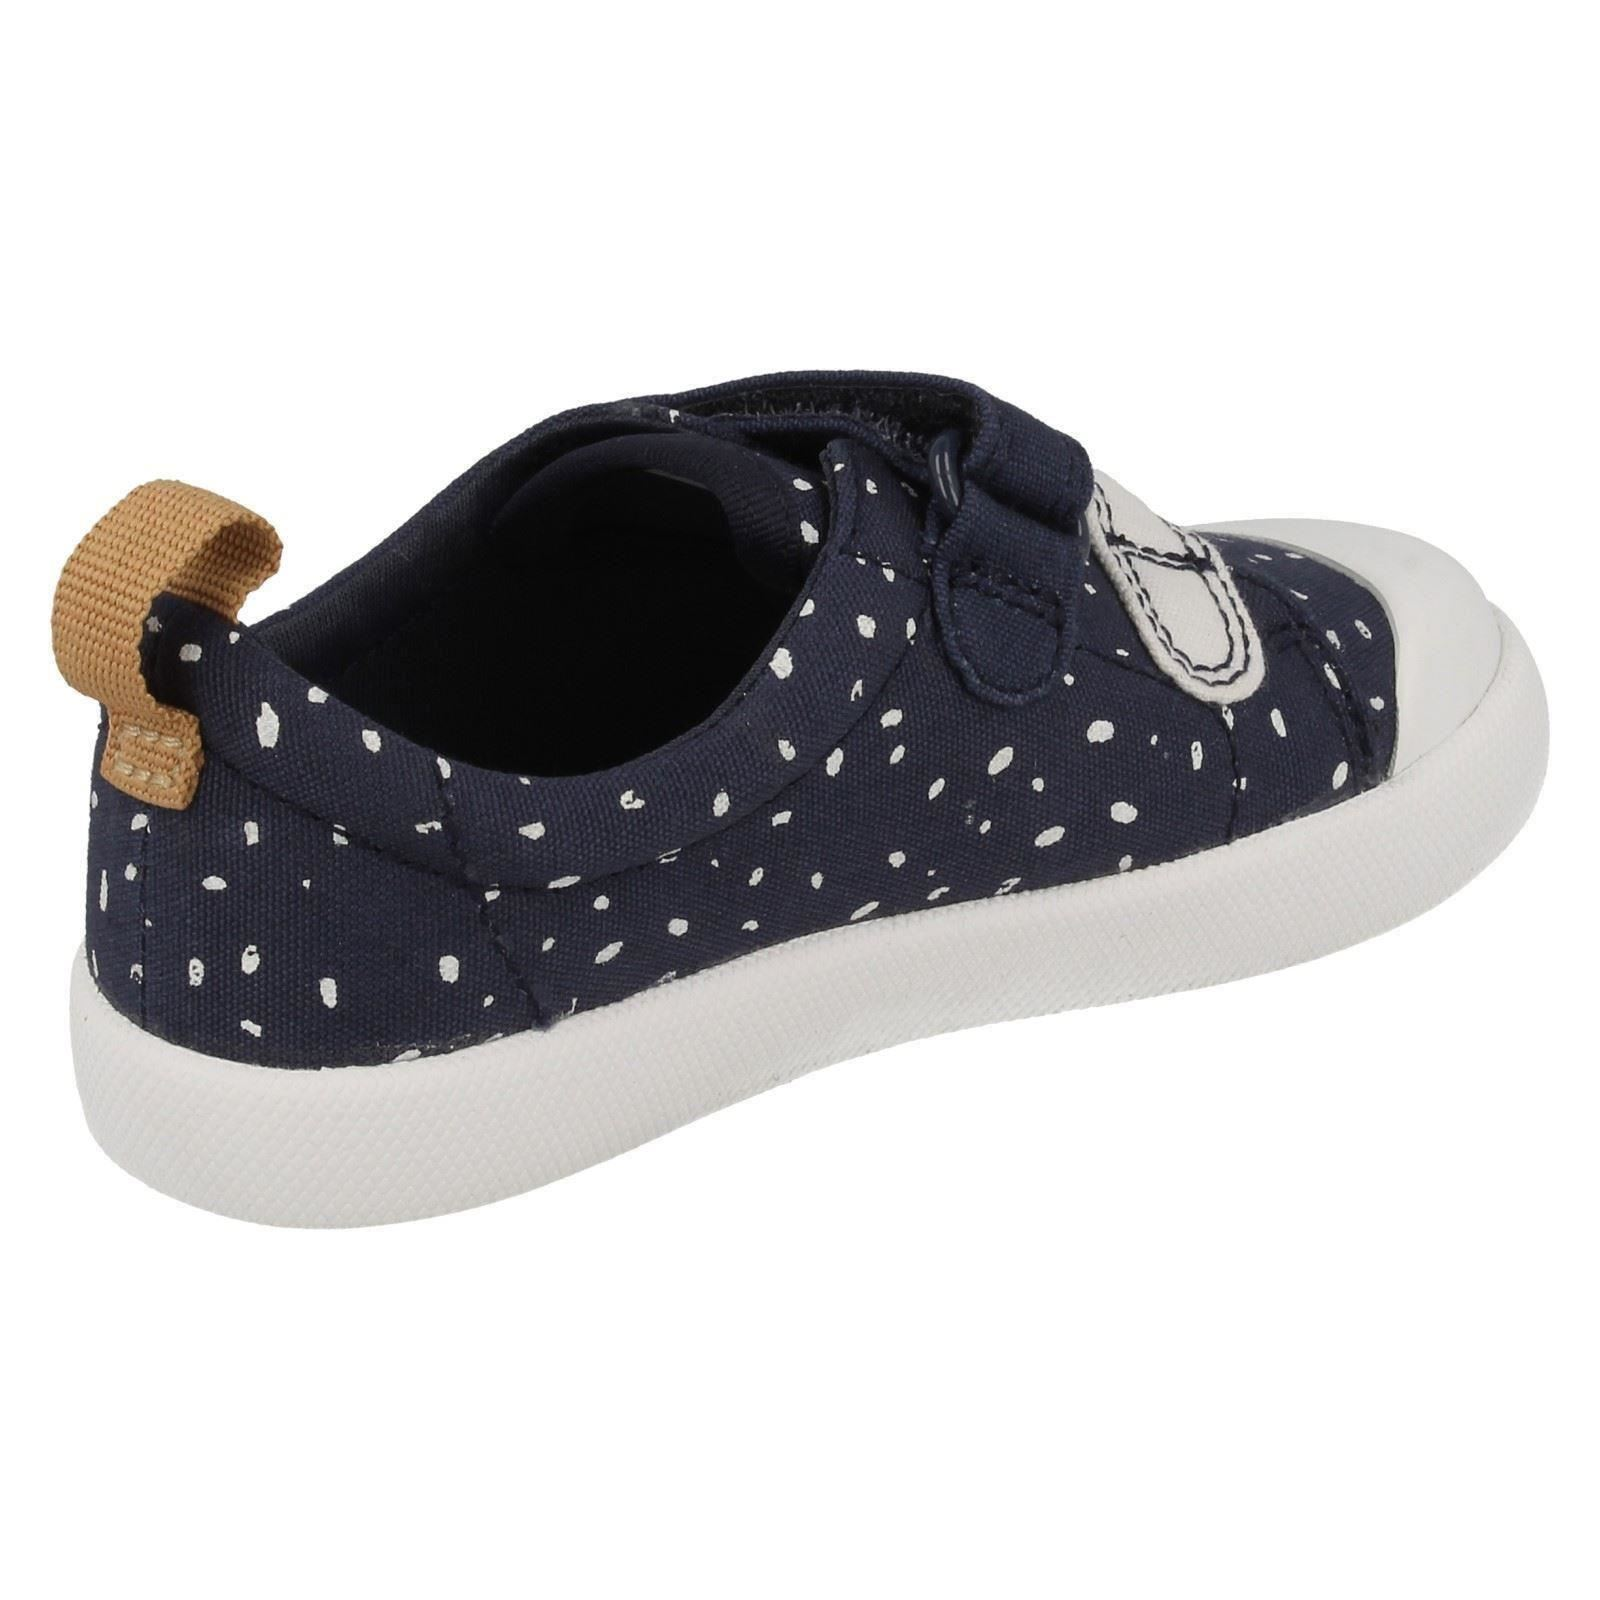 Girls Clarks Doodles First Shoes Halcy Hati